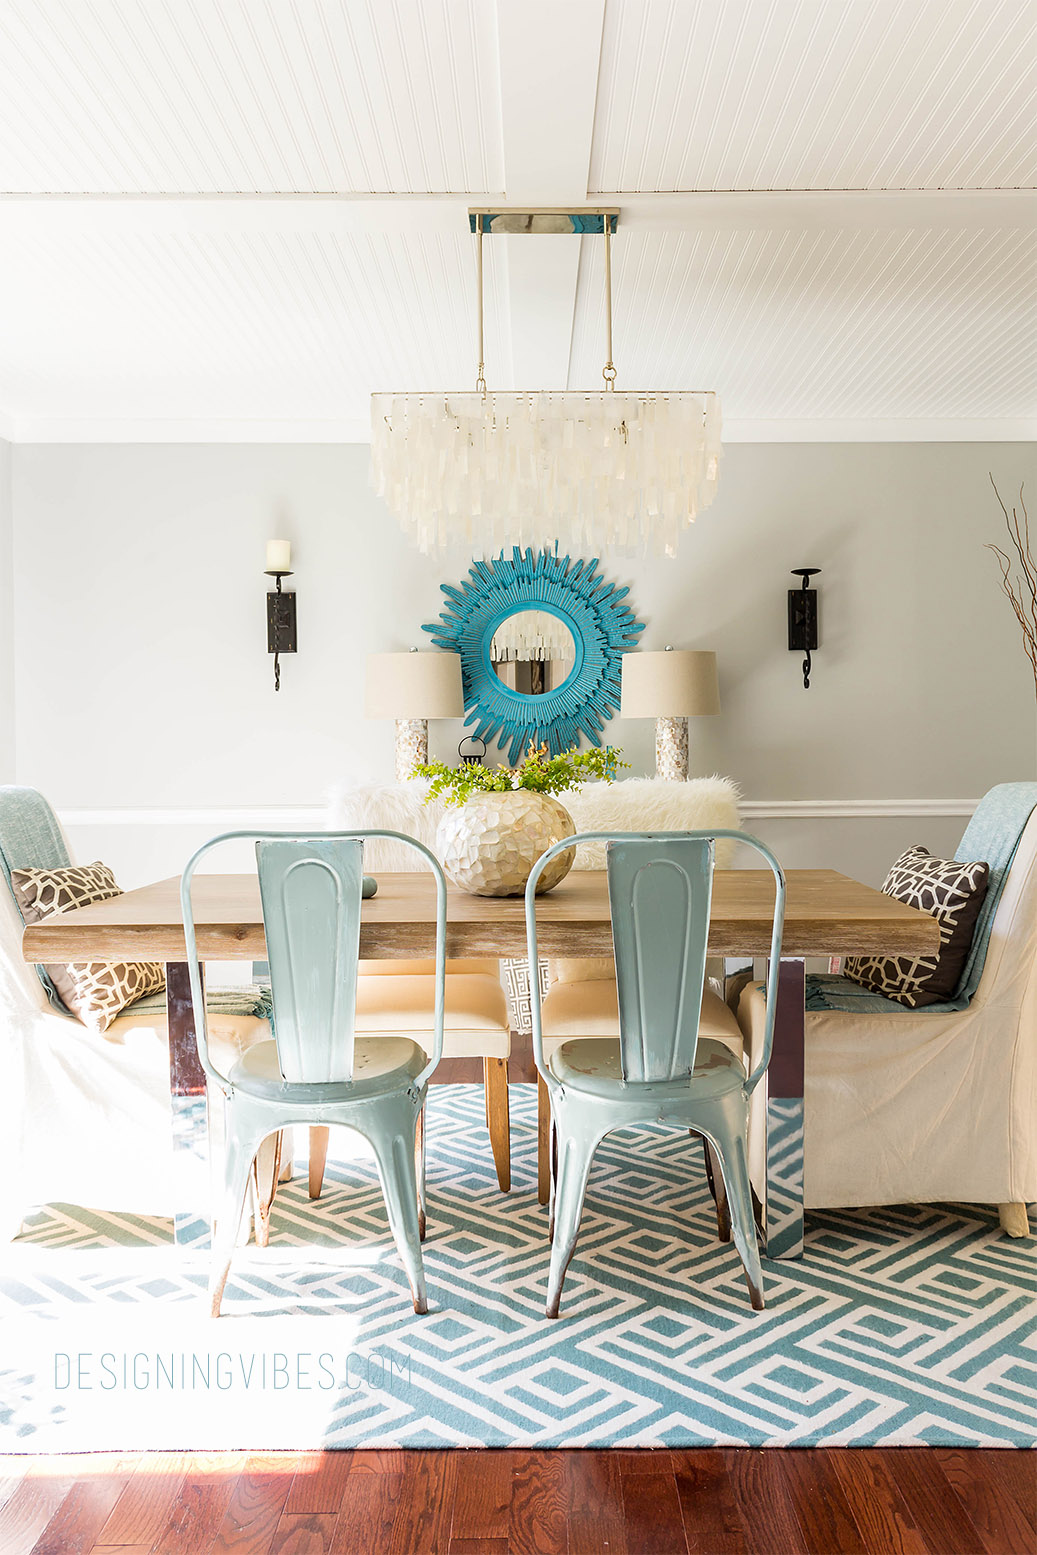 Bringing Rustic Coastal Vibes to my Dining Room